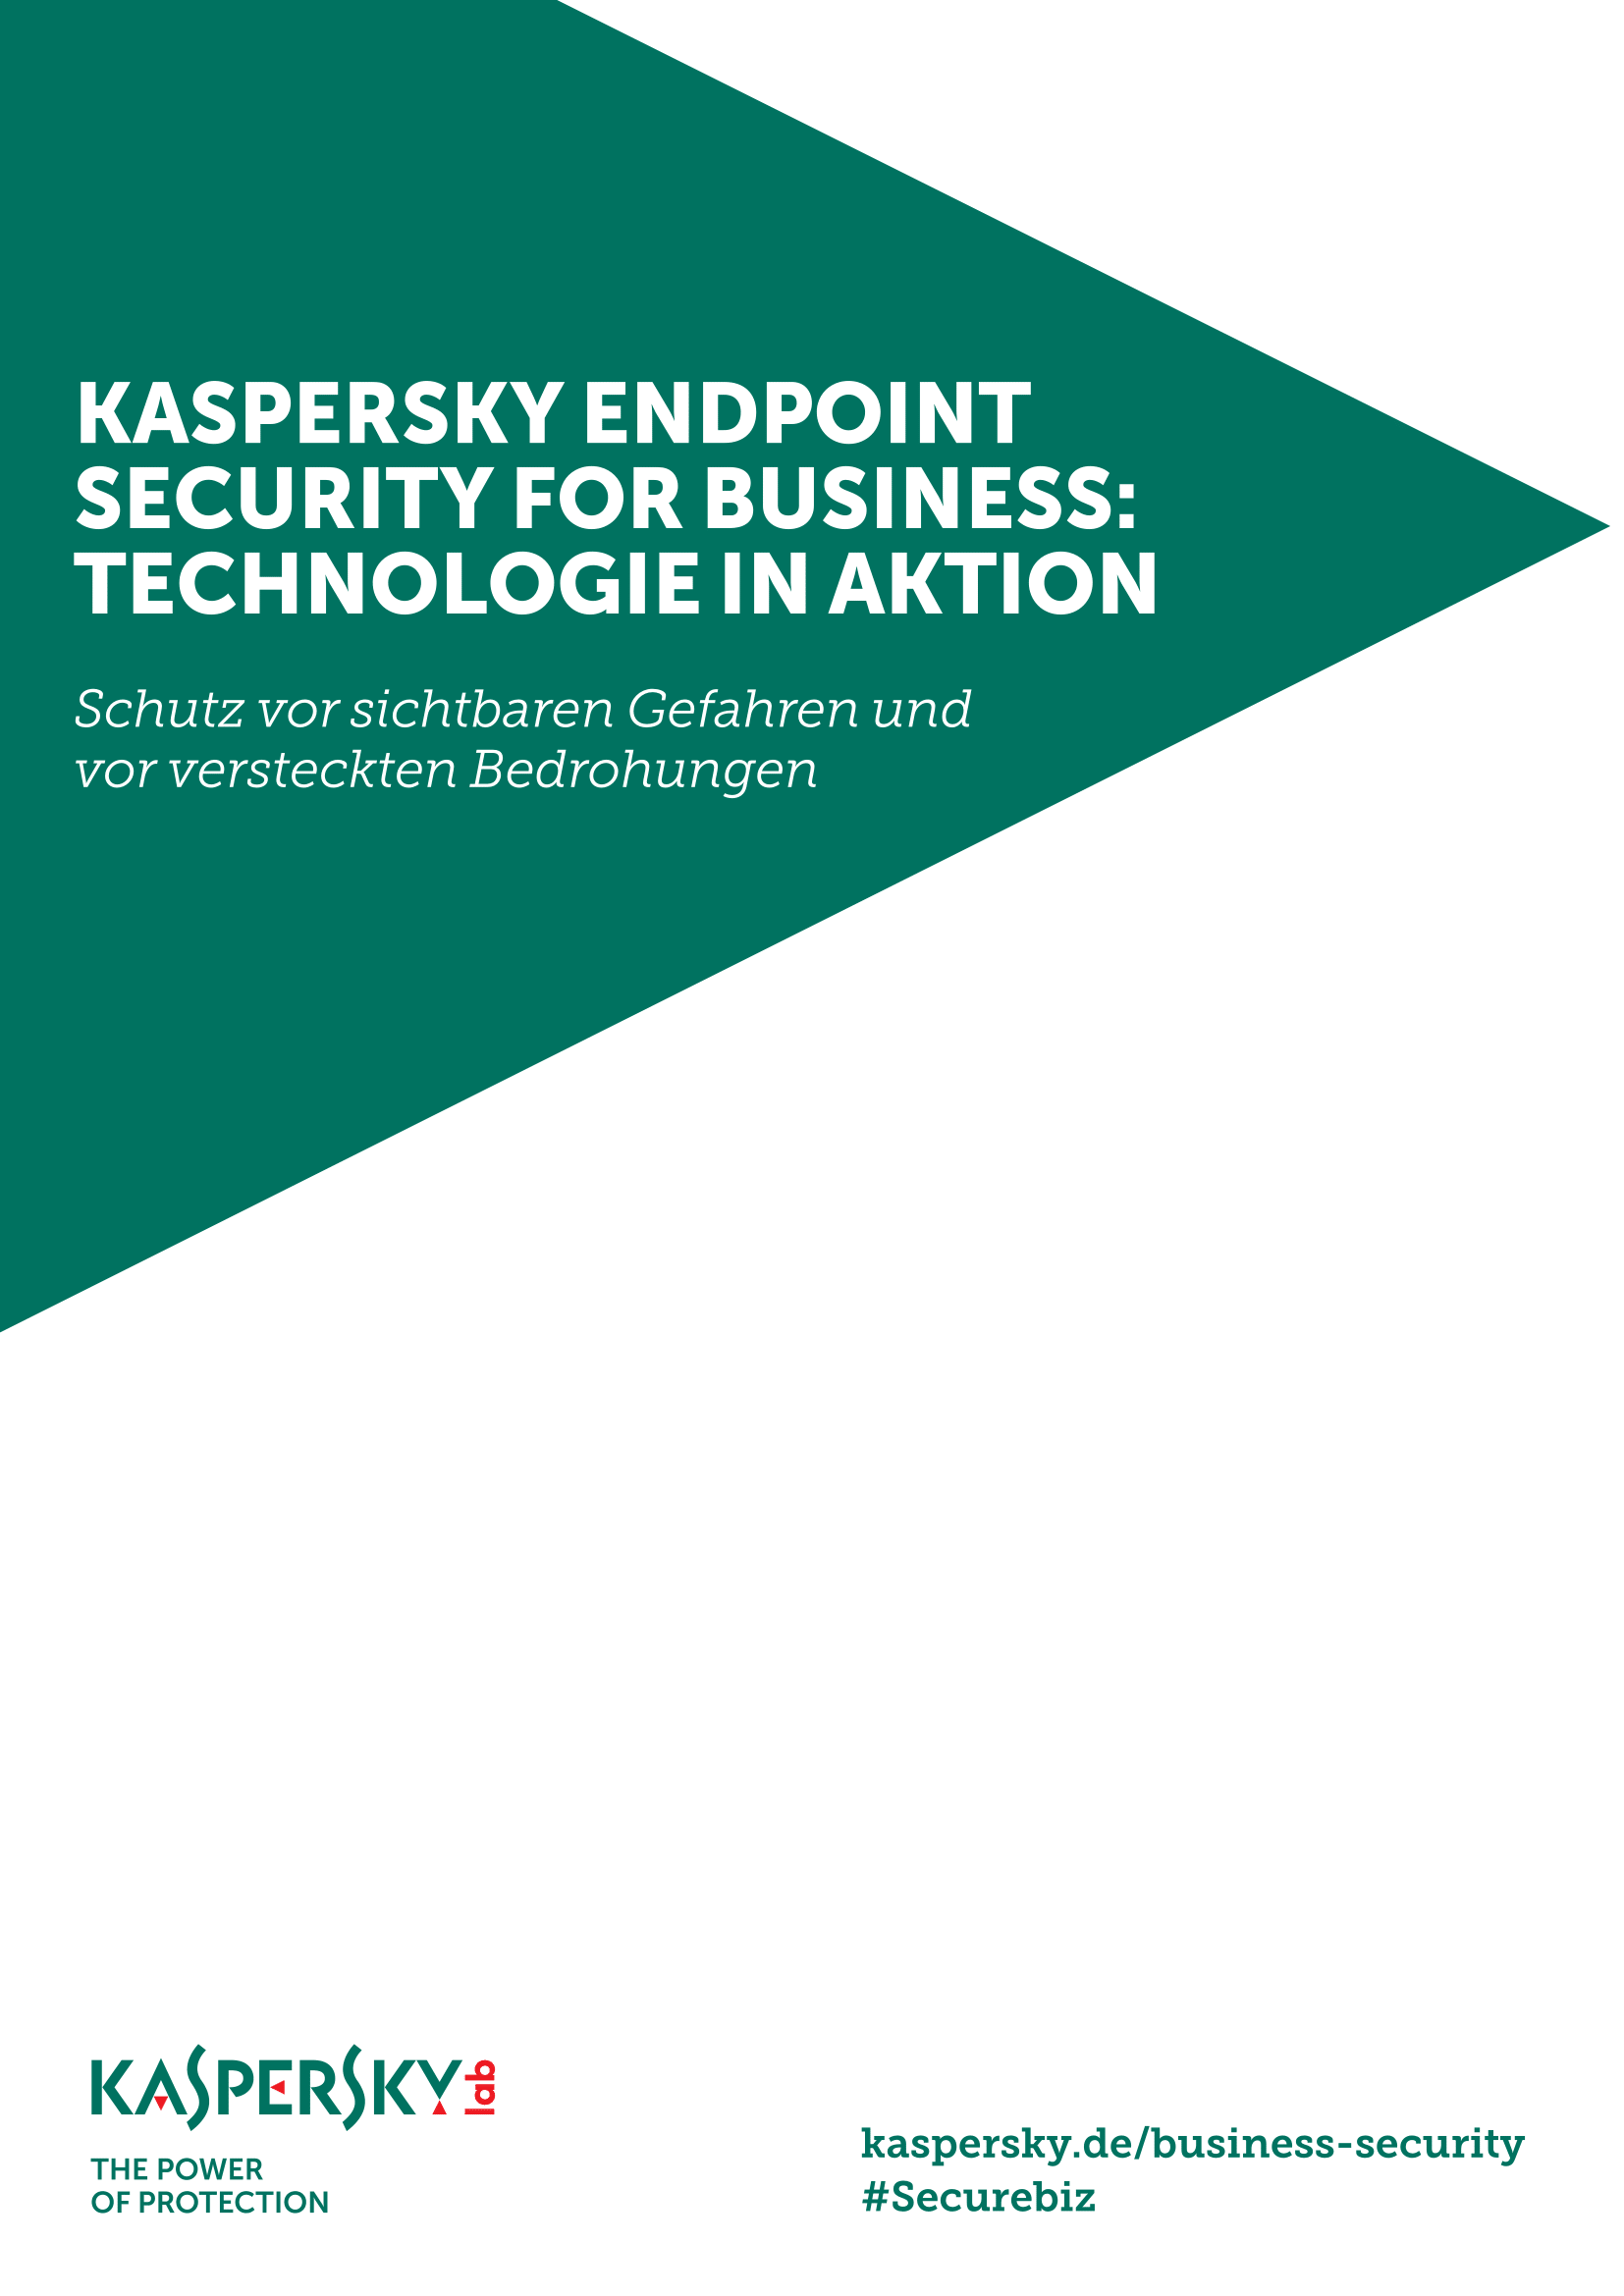 Kaspersky Endpoint Security For Business: Technologie in Aktion